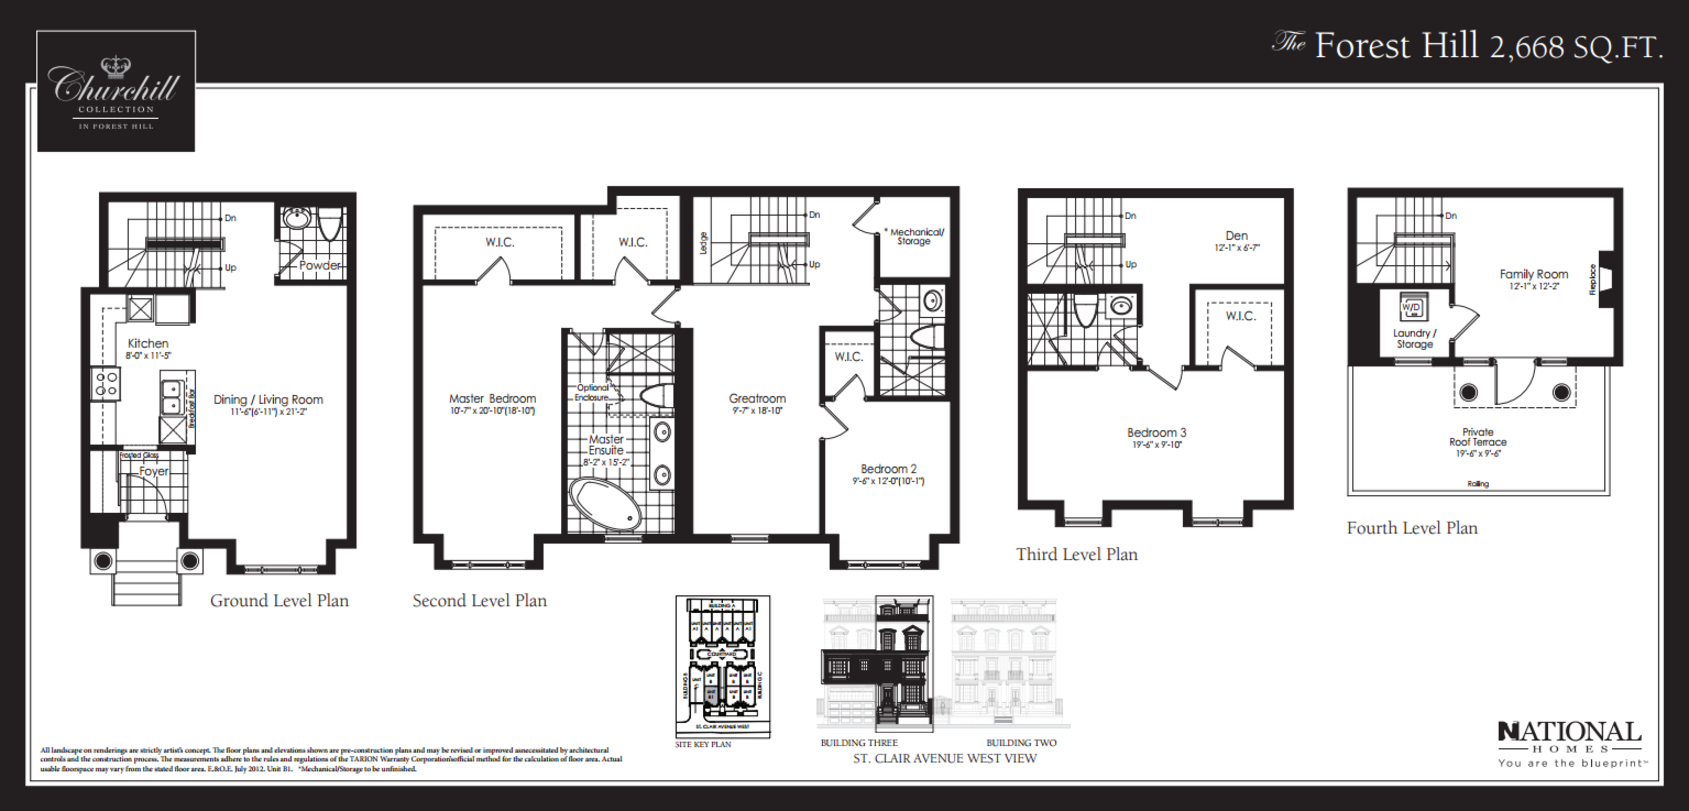 THE FOREST HILL TOWNS - FLOORPLAN 2668 SQ FT - CONTACT YOSSI KAPLAN